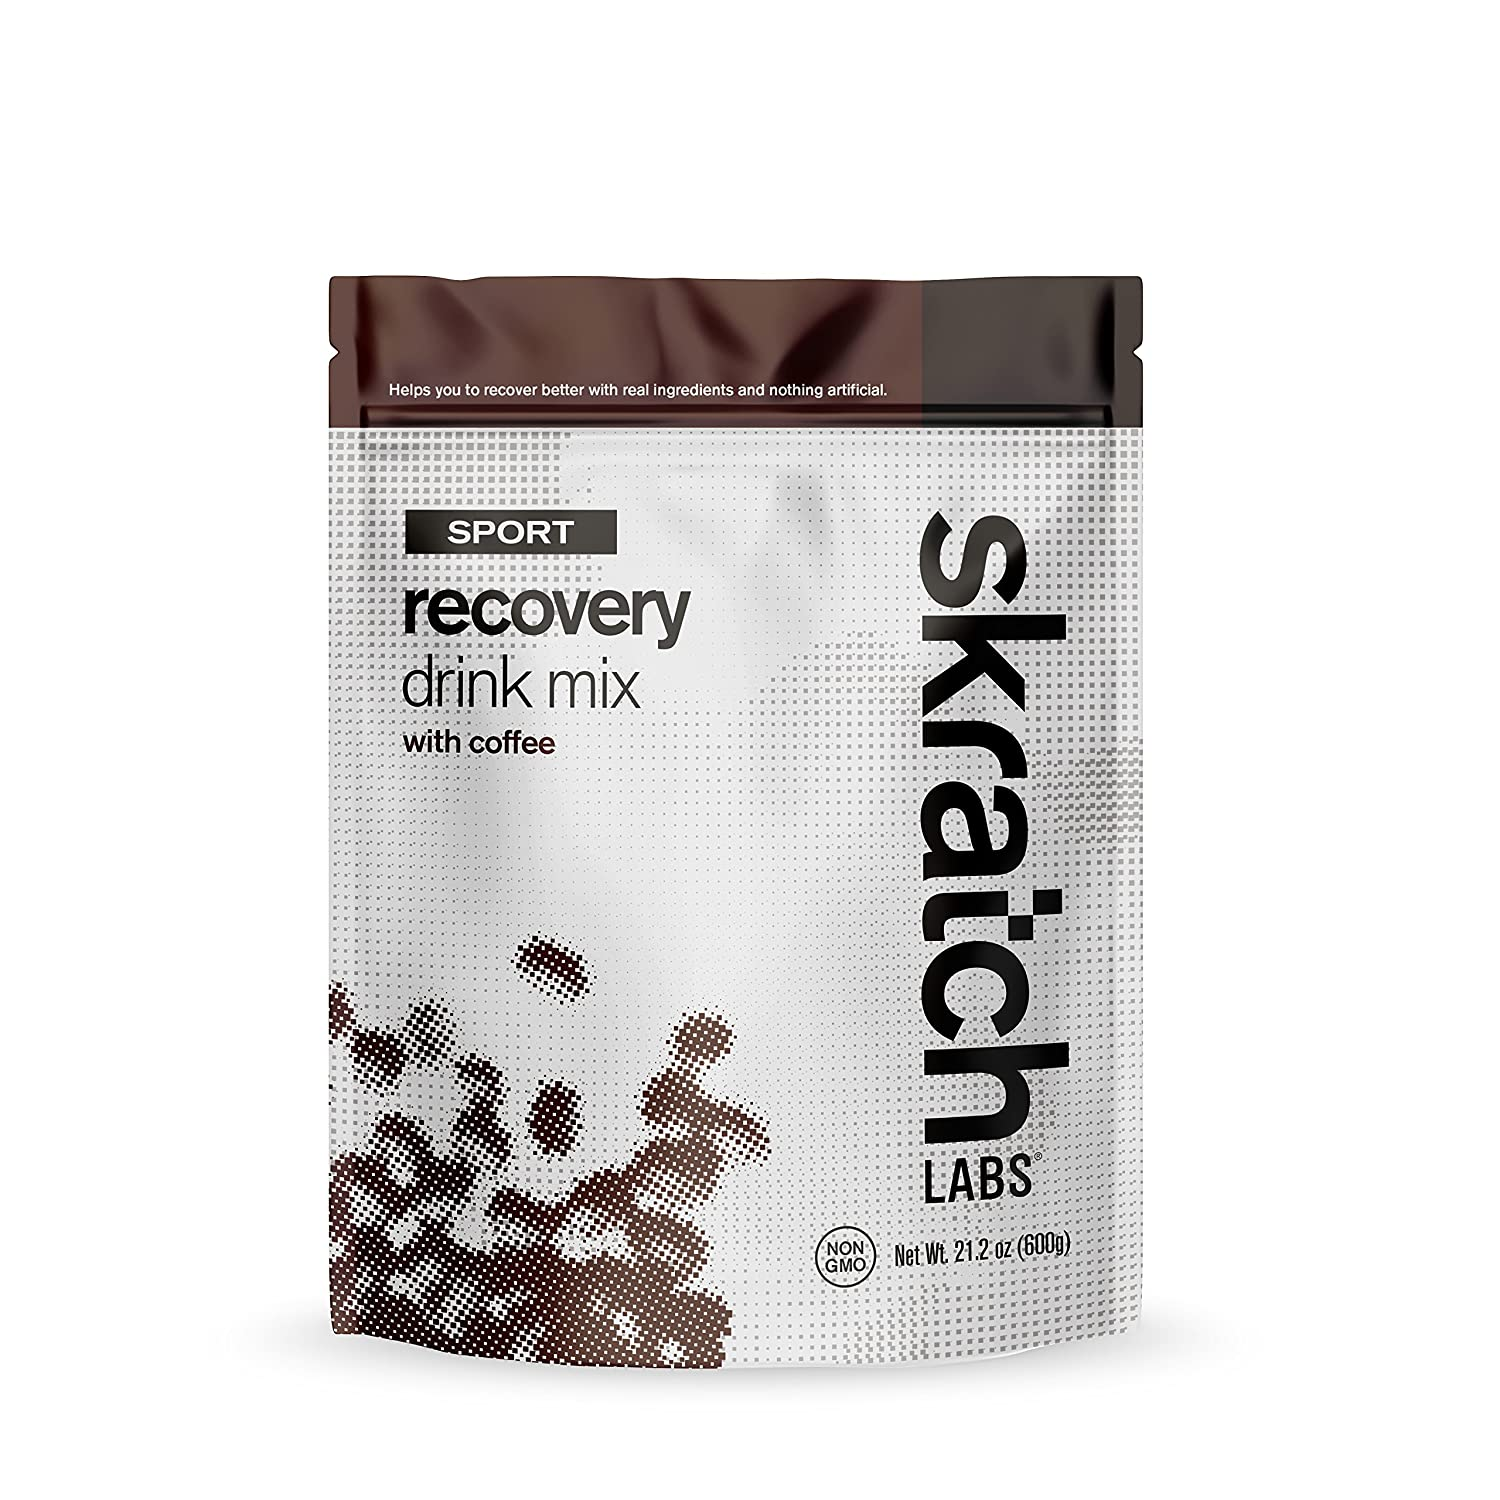 Skratch Labs: NEW Sport Recovery Drink Mix with Coffee, 12 serving resealable bag